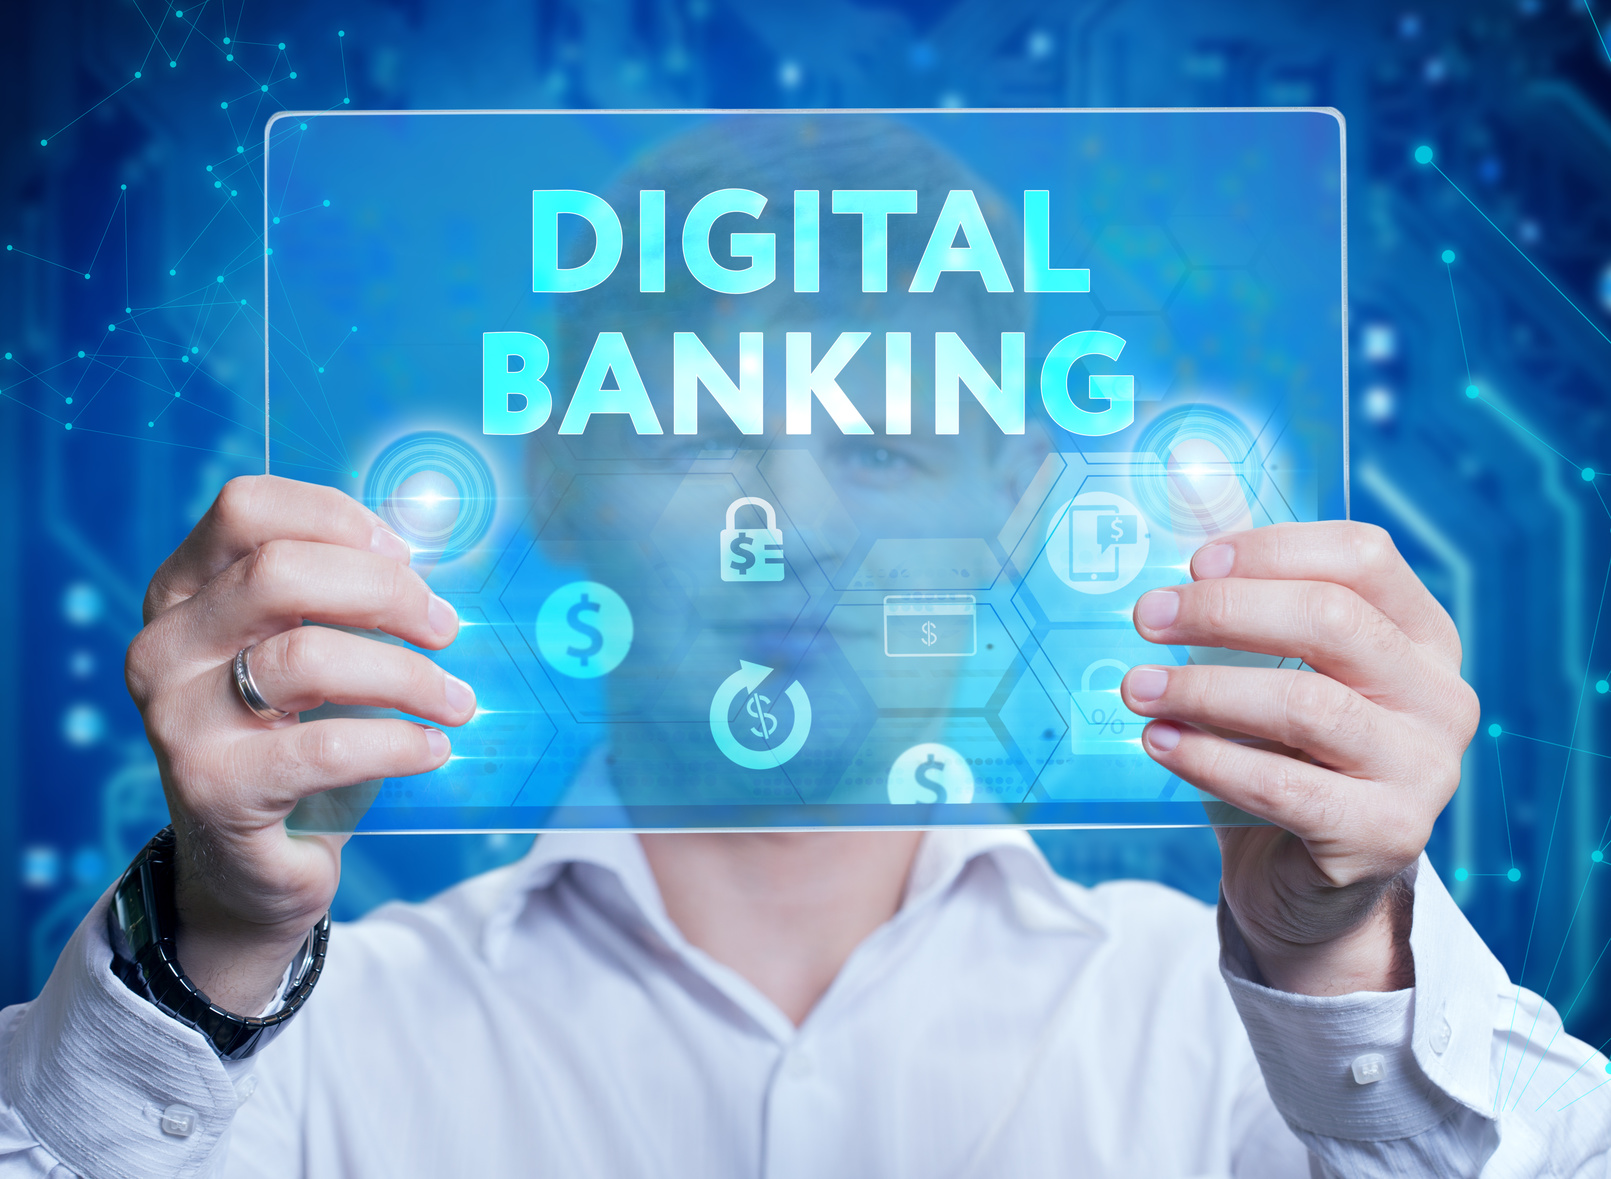 Global Digital Banking Market growing at a CAGR of 18.2% by 2023 With Top Manufactures: Urban FT, Kony, Backbase, Technisys, Infosys, Digiliti Money, Innofis, Mobilearth, D3 Banking Technology